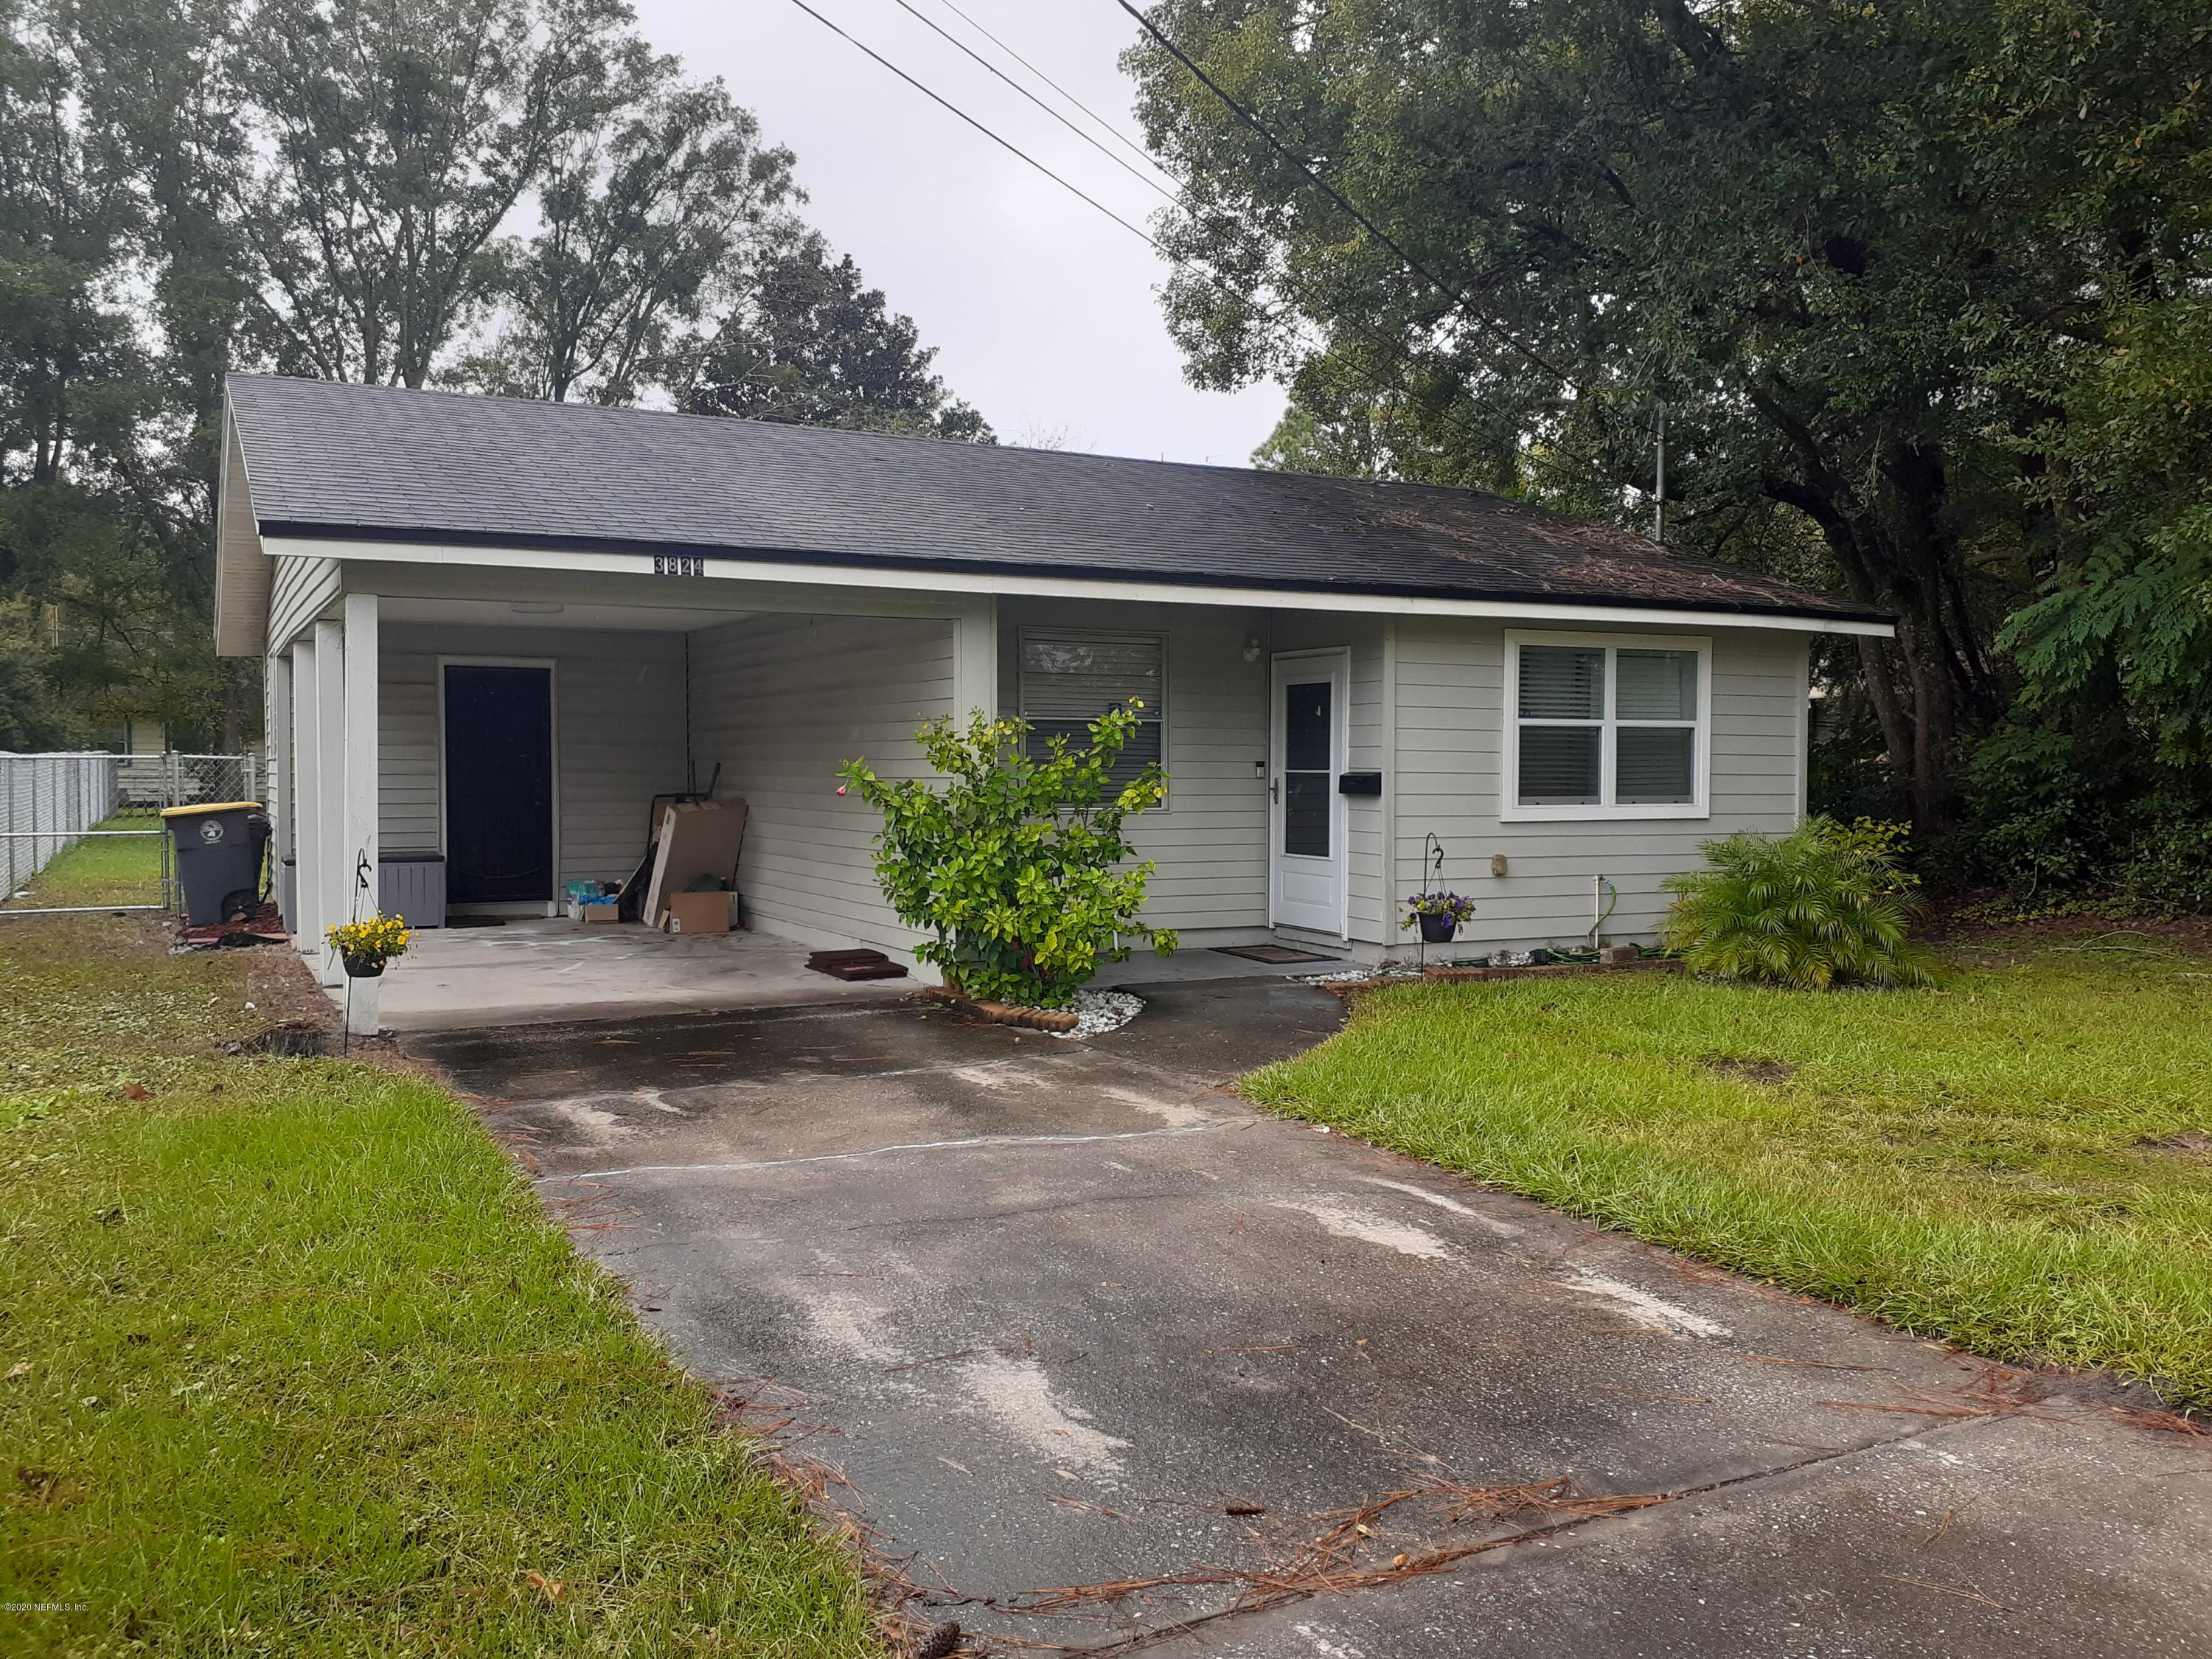 3824 ALMEDA, JACKSONVILLE, FLORIDA 32209, 3 Bedrooms Bedrooms, ,2 BathroomsBathrooms,Residential,For sale,ALMEDA,1082150